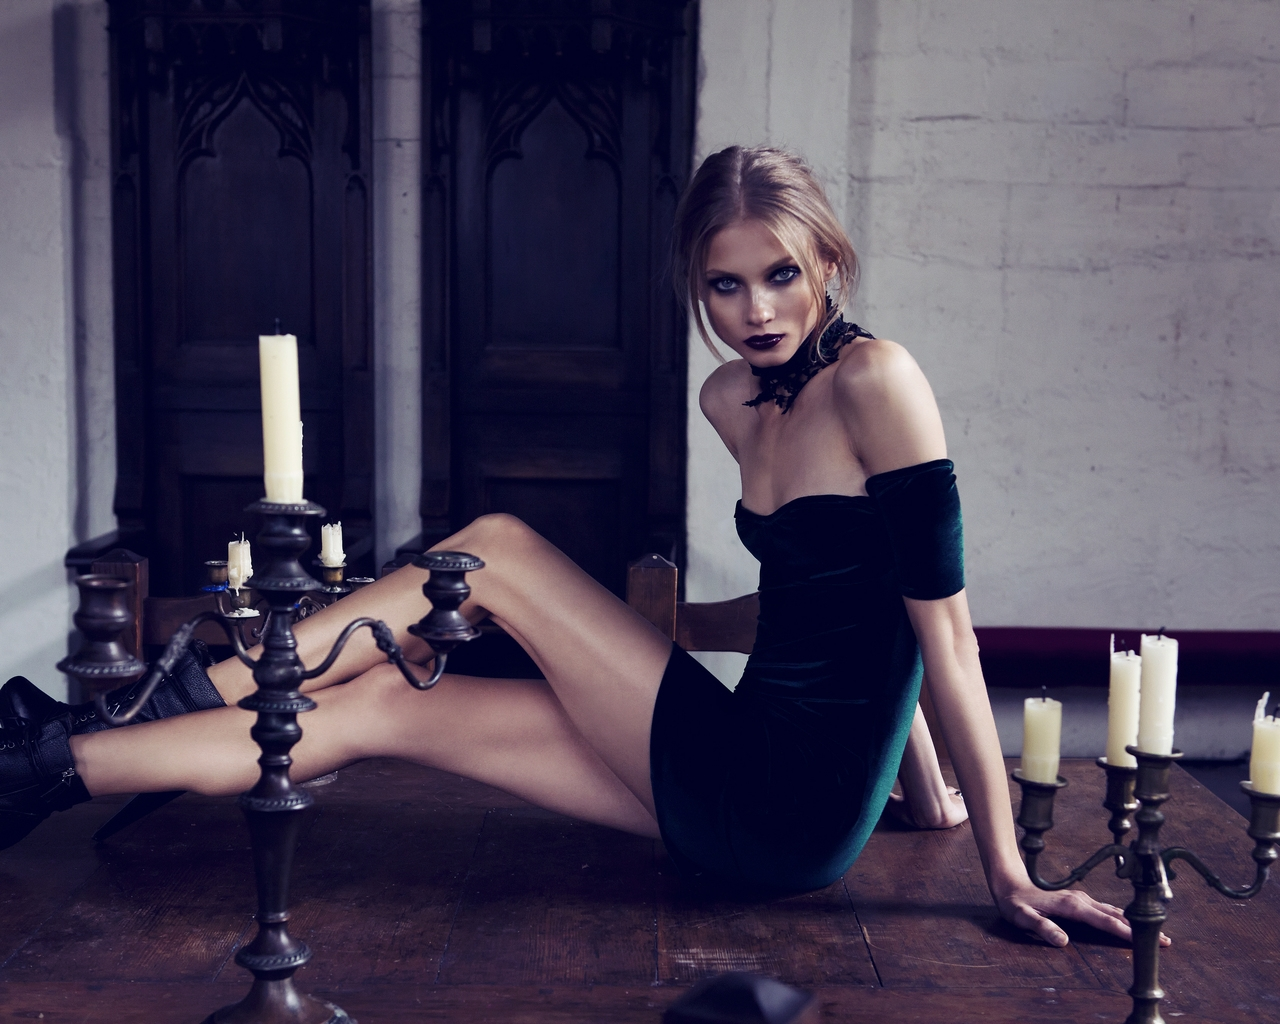 Anna Selezneva Dark Lipstick for 1280 x 1024 resolution